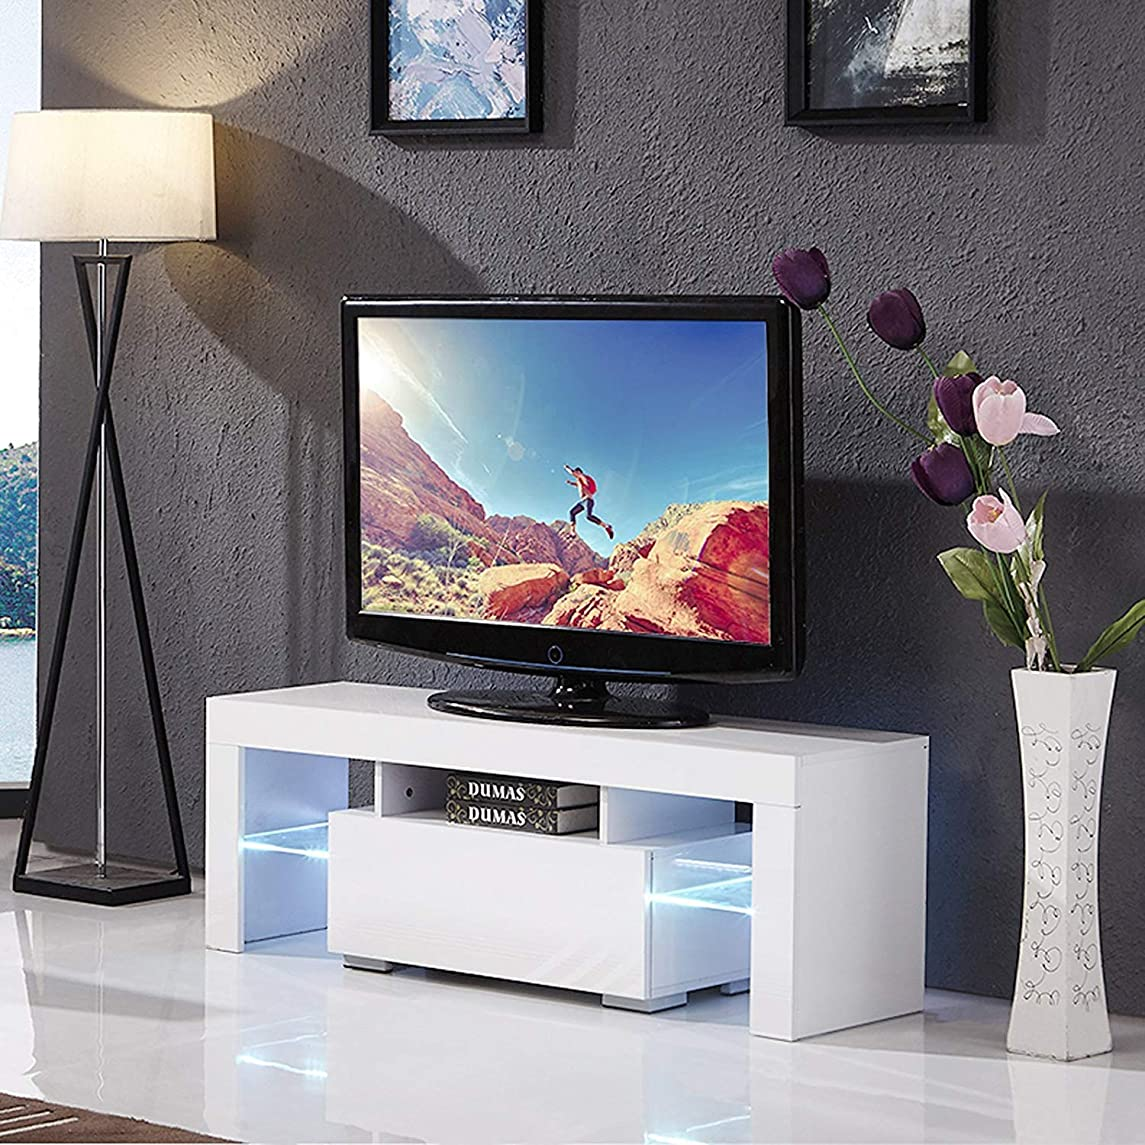 Mecor Modern White TV Stand, 51 Inch High Gloss LED TV Stand Console Table for Living Room